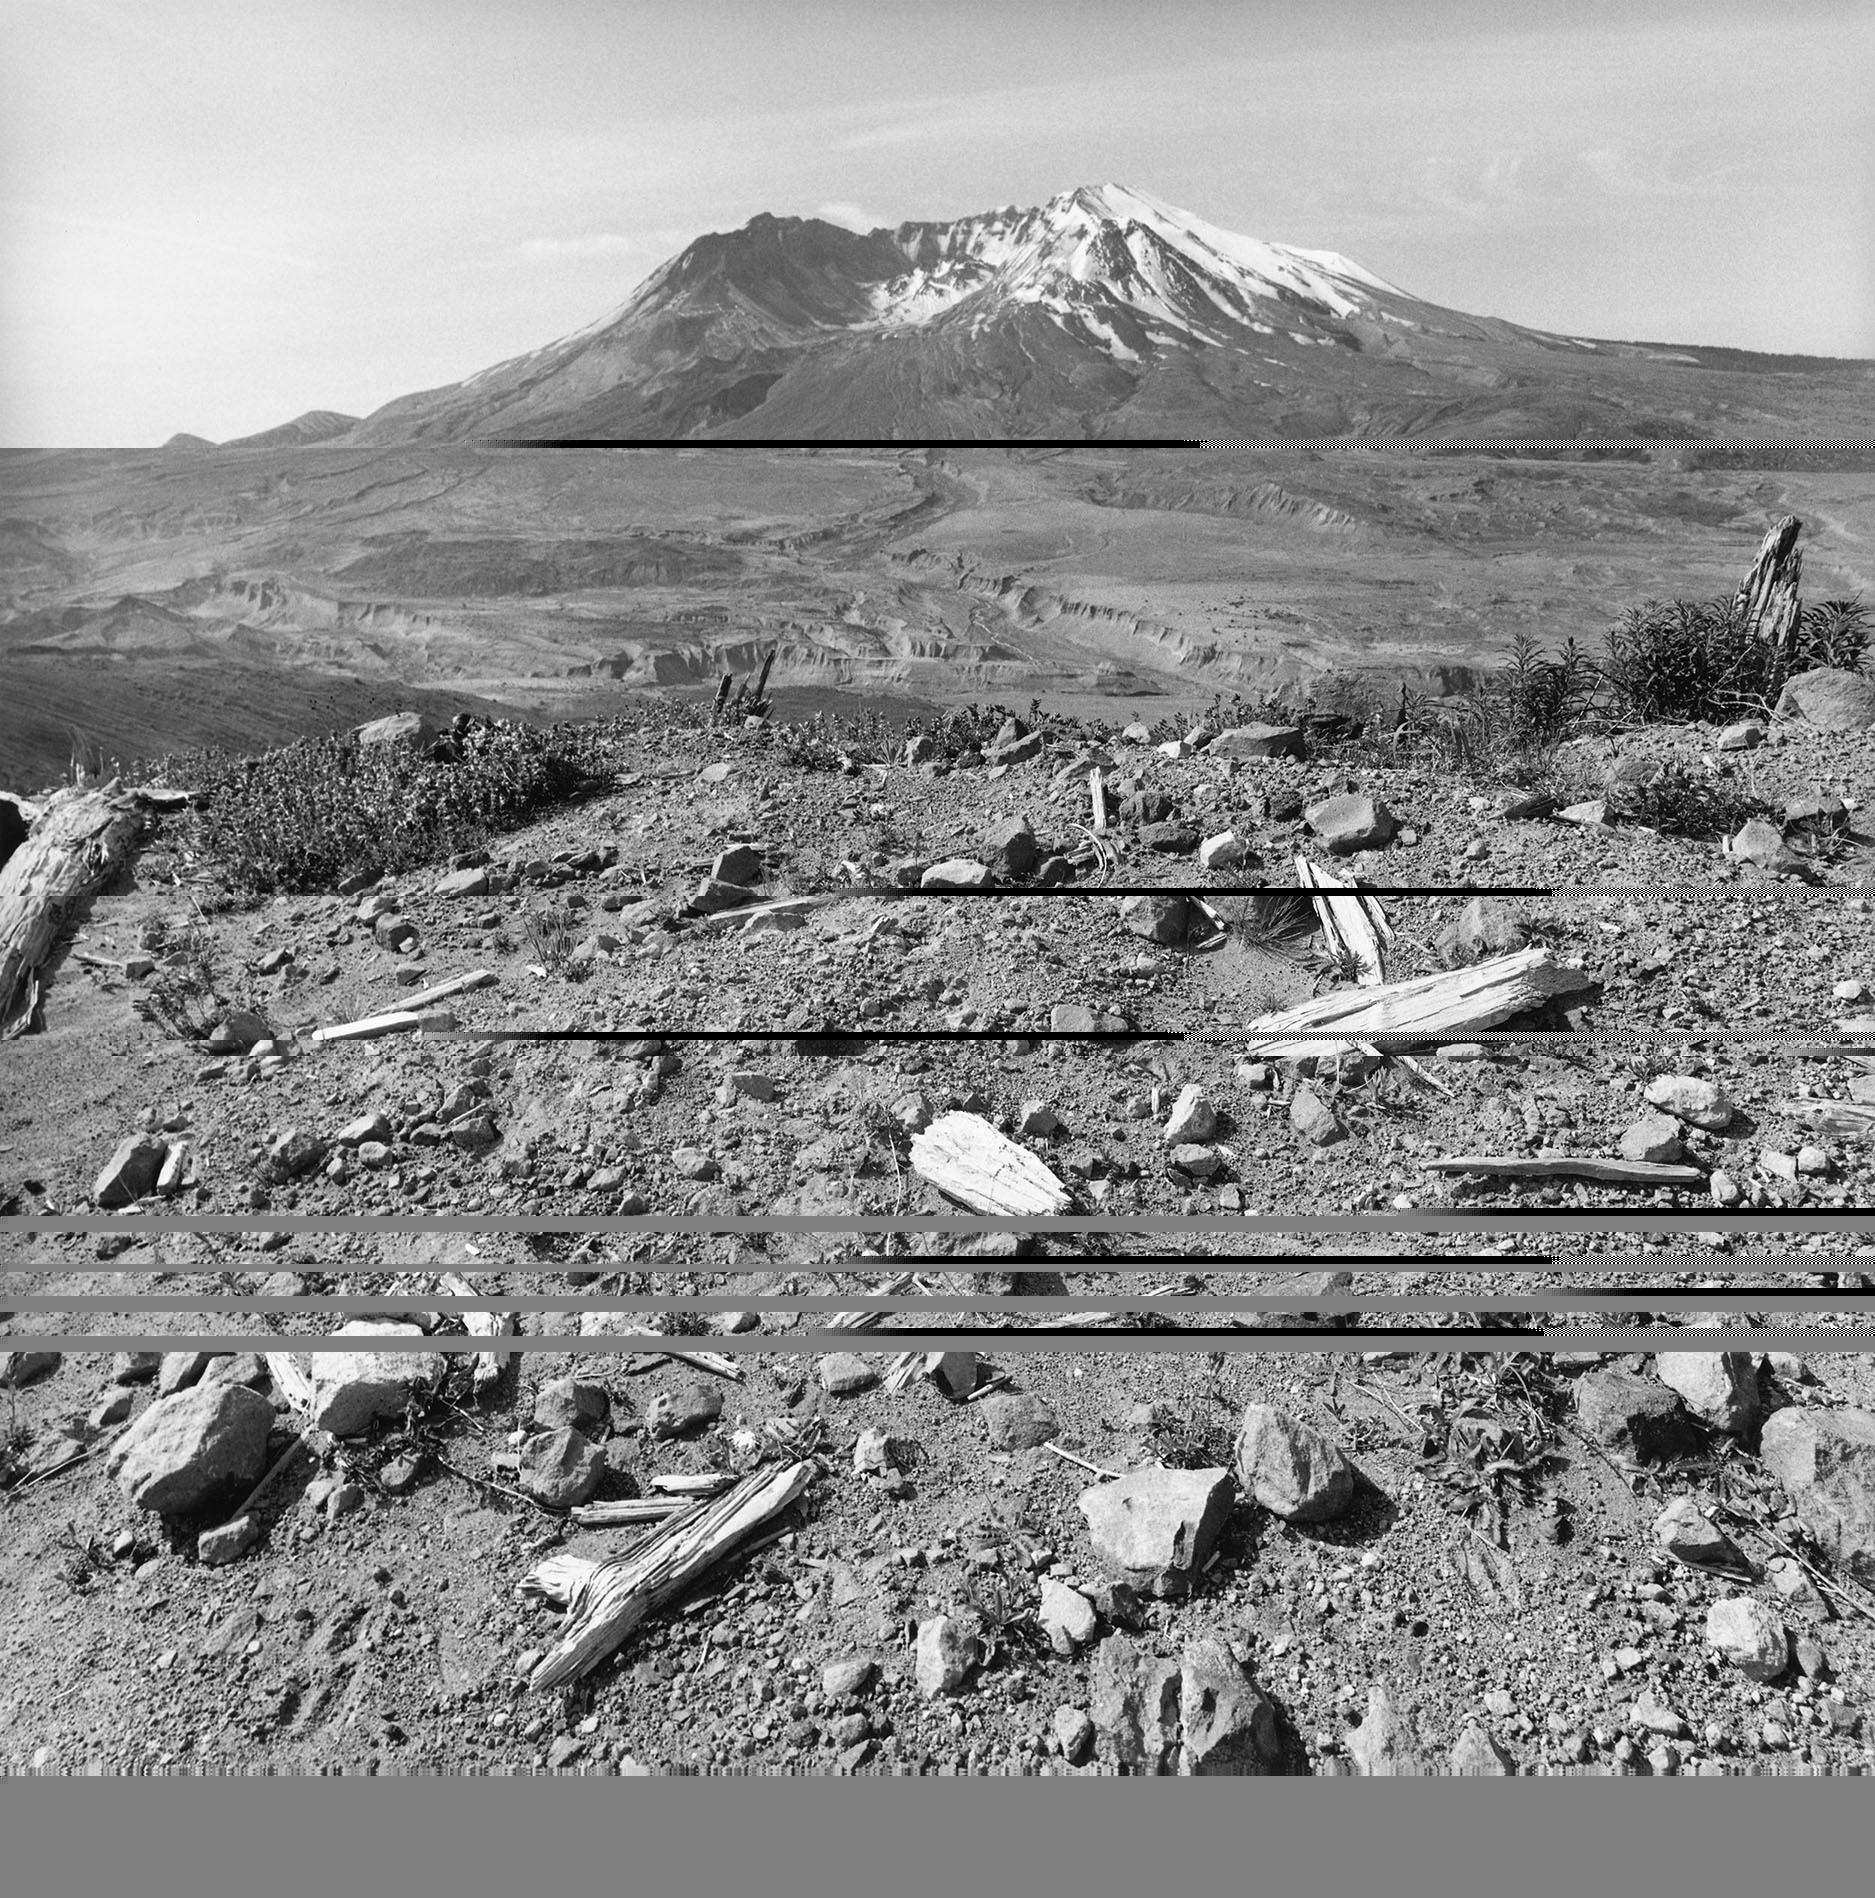 Mount Saint Helens, Washington, 2001. Gelatin silver print. © Lee Friedlander, Courtesy Fraenkel Gallery, San Francisco